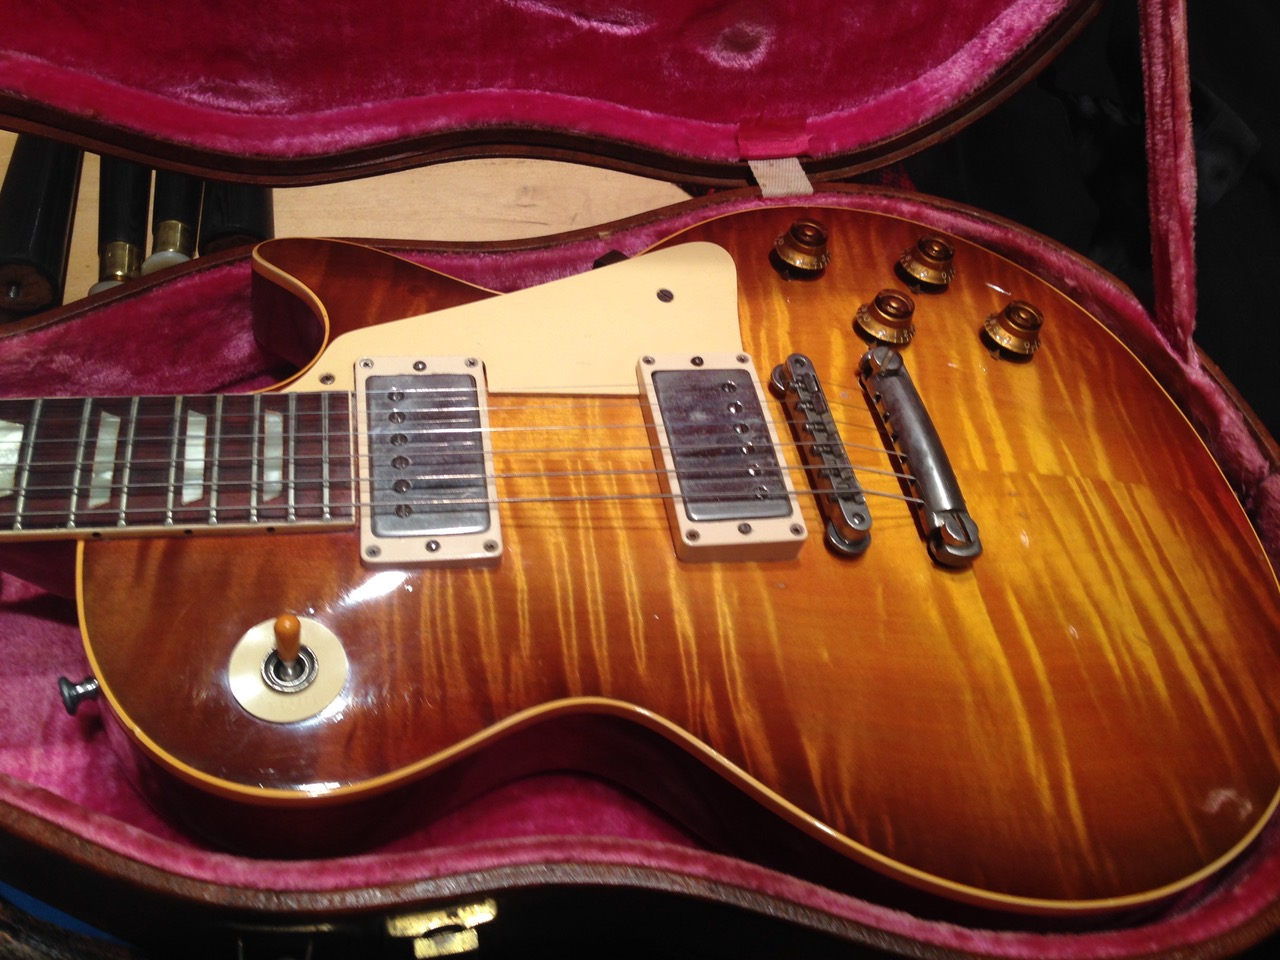 1959 Gibson Les Paul Standard Sunburst Flame Top 8.8 lbs